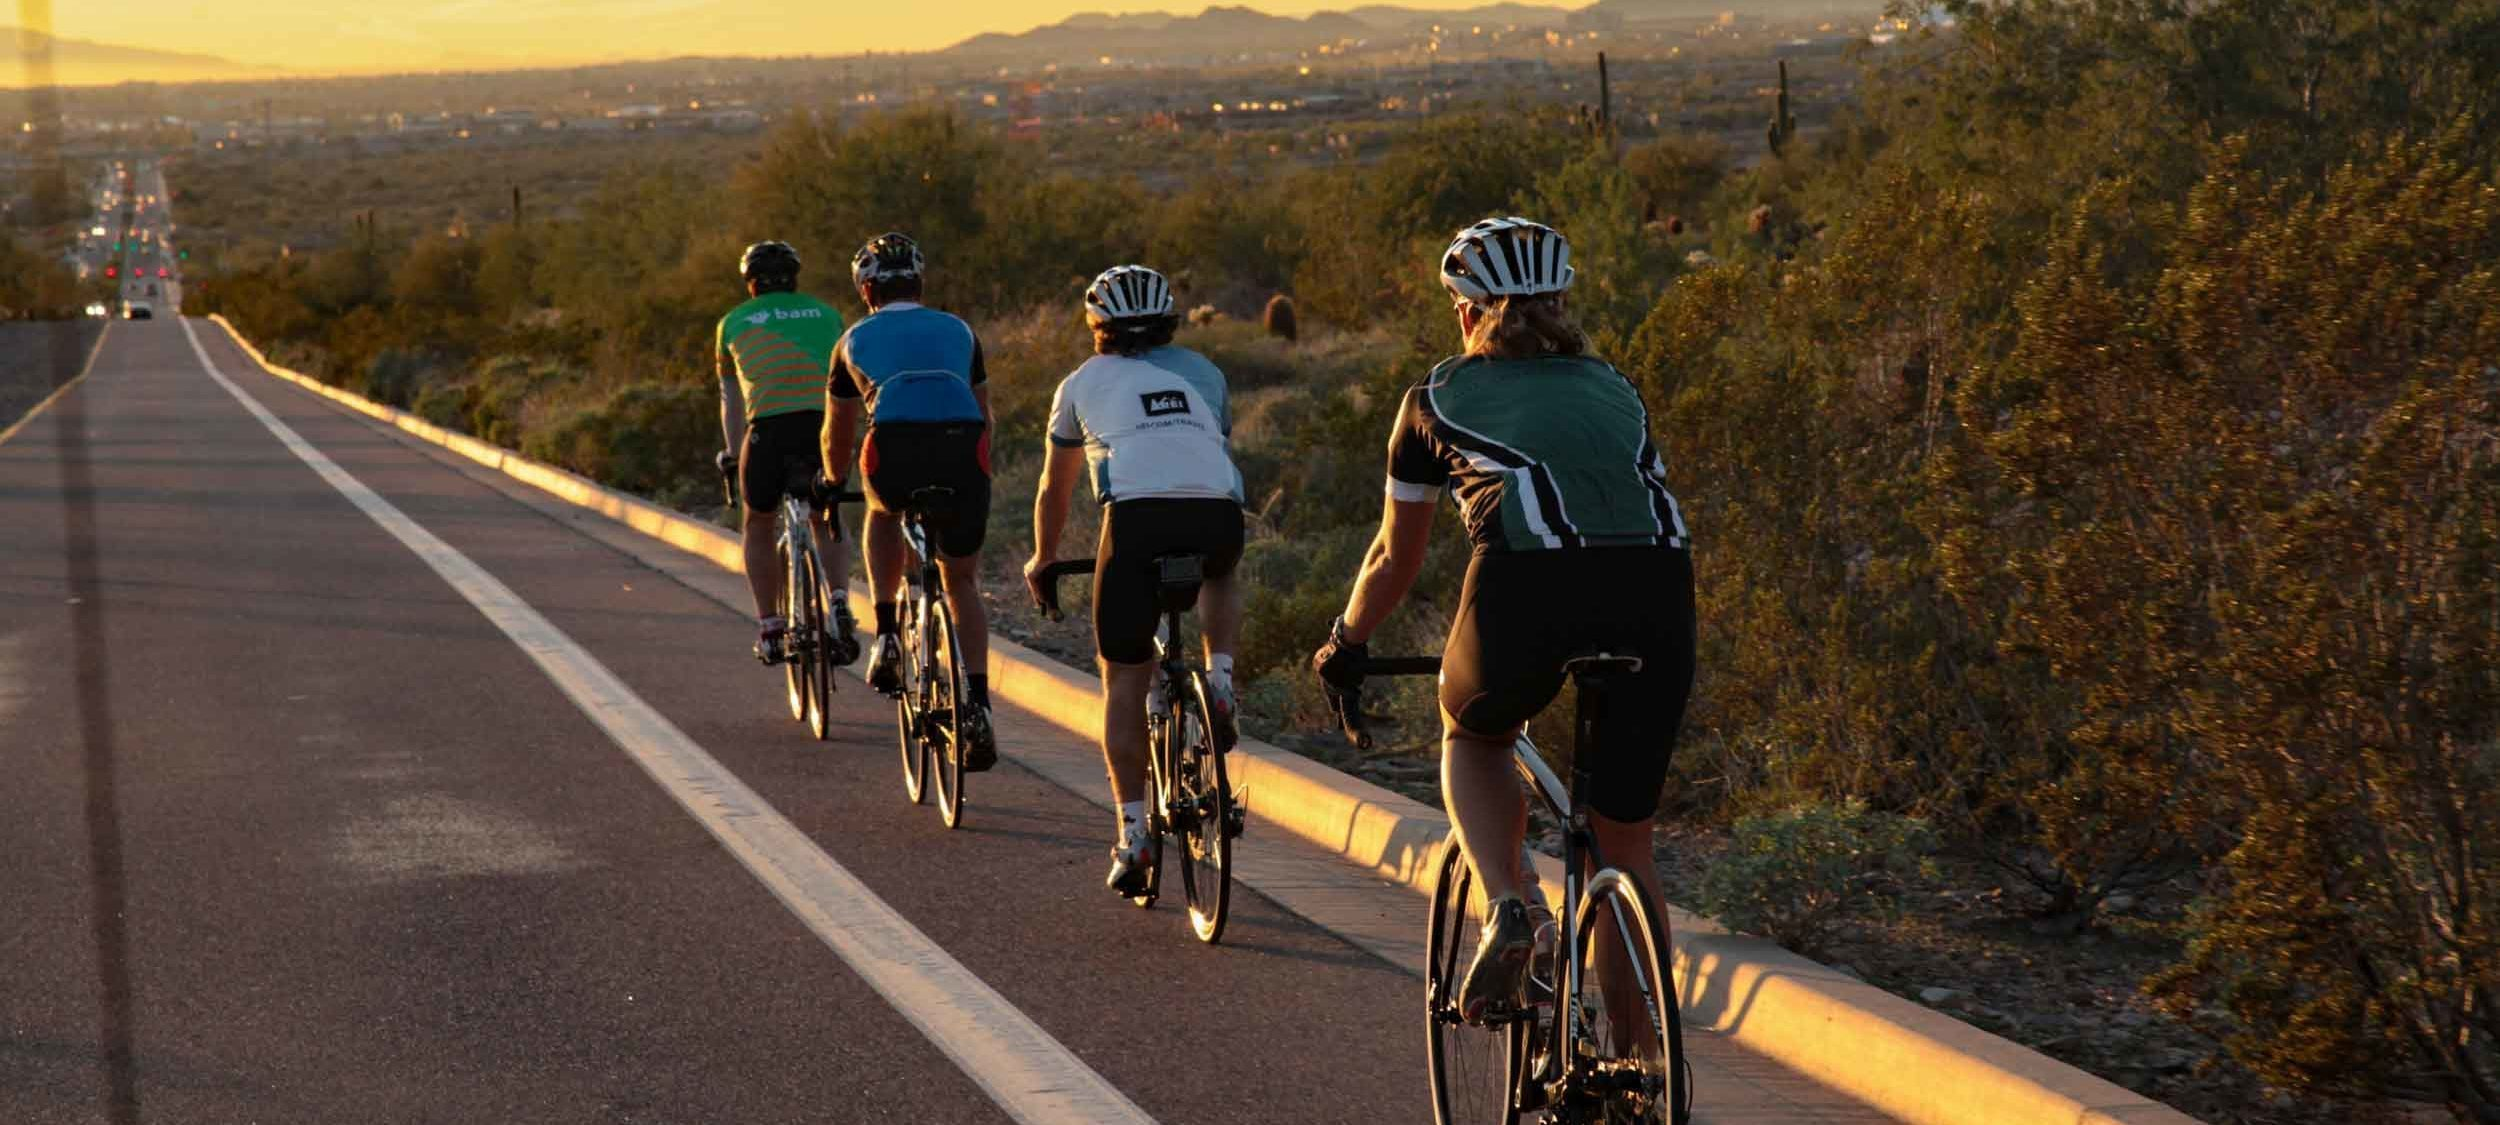 Four Road cyclers